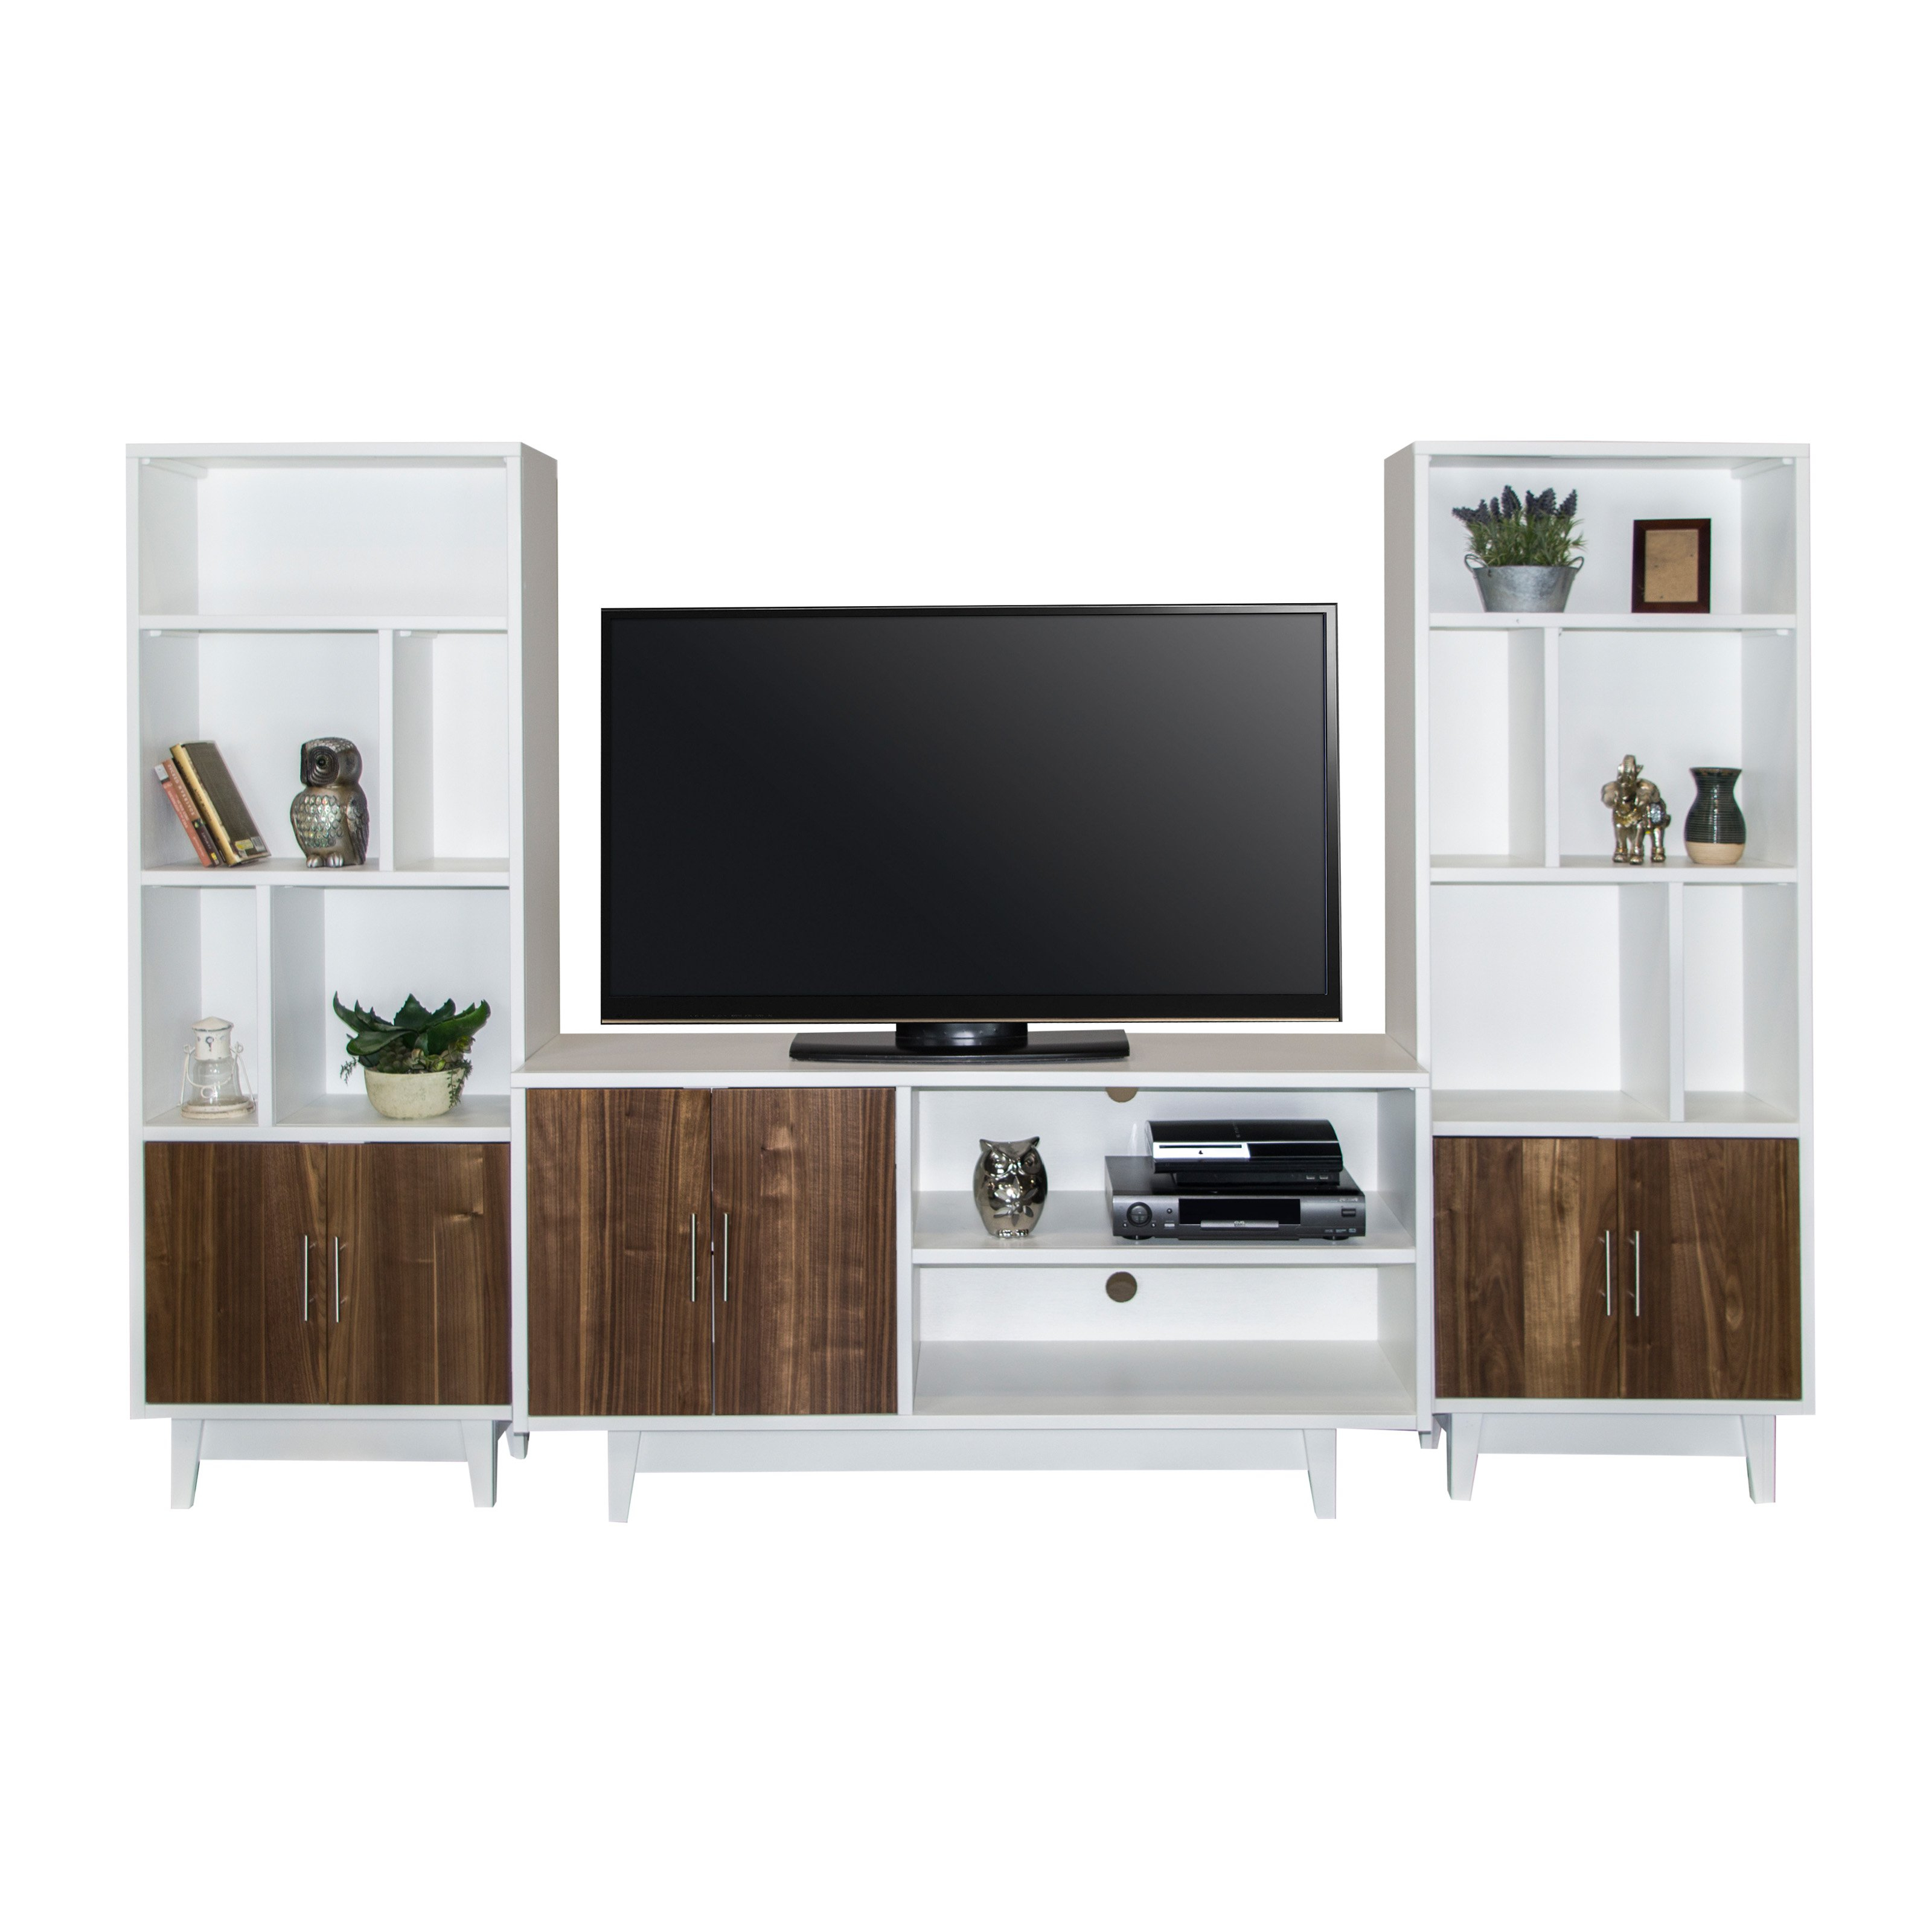 Legends Furniture Draper Contemporary Tv Console With Optional Wall Inside Draper 62 Inch Tv Stands (Gallery 11 of 20)